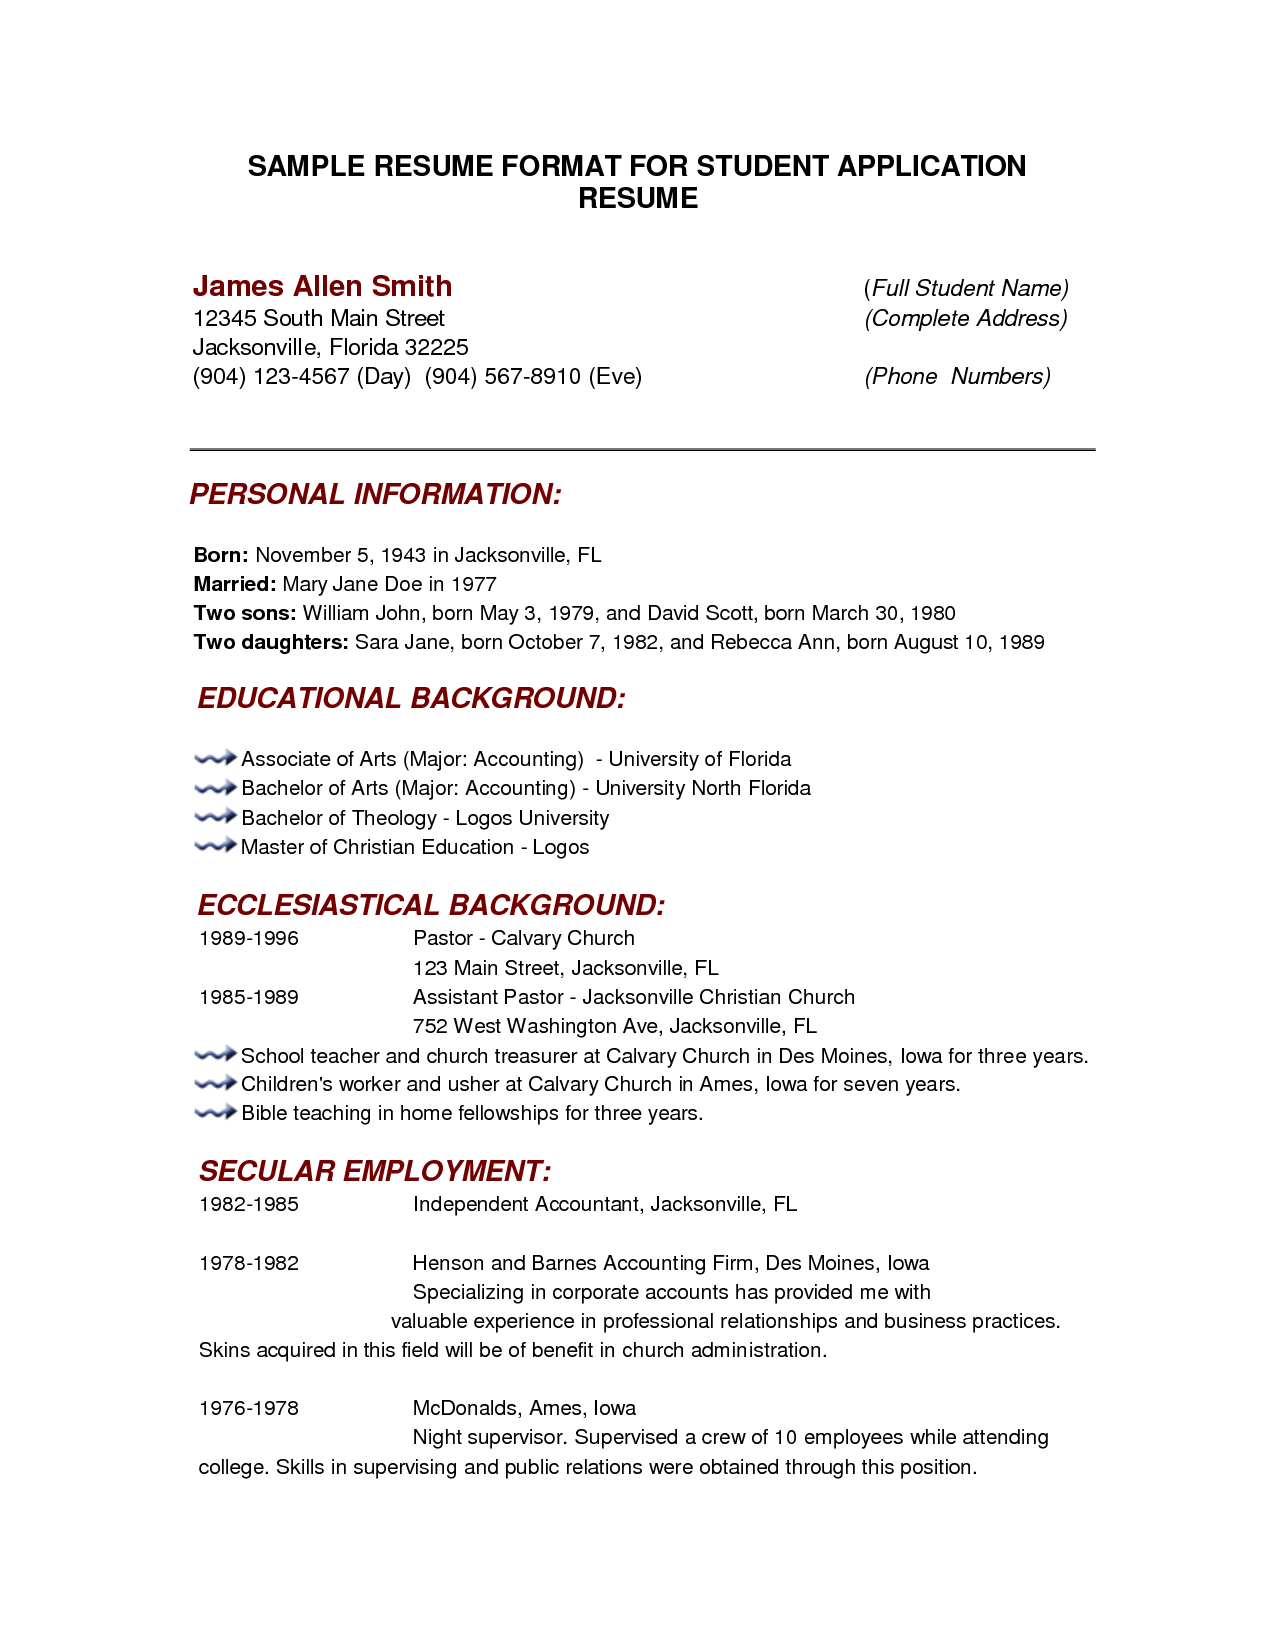 Resume Templates For Recent College Graduates Resume Template For College Students  Httpwwwresumecareer